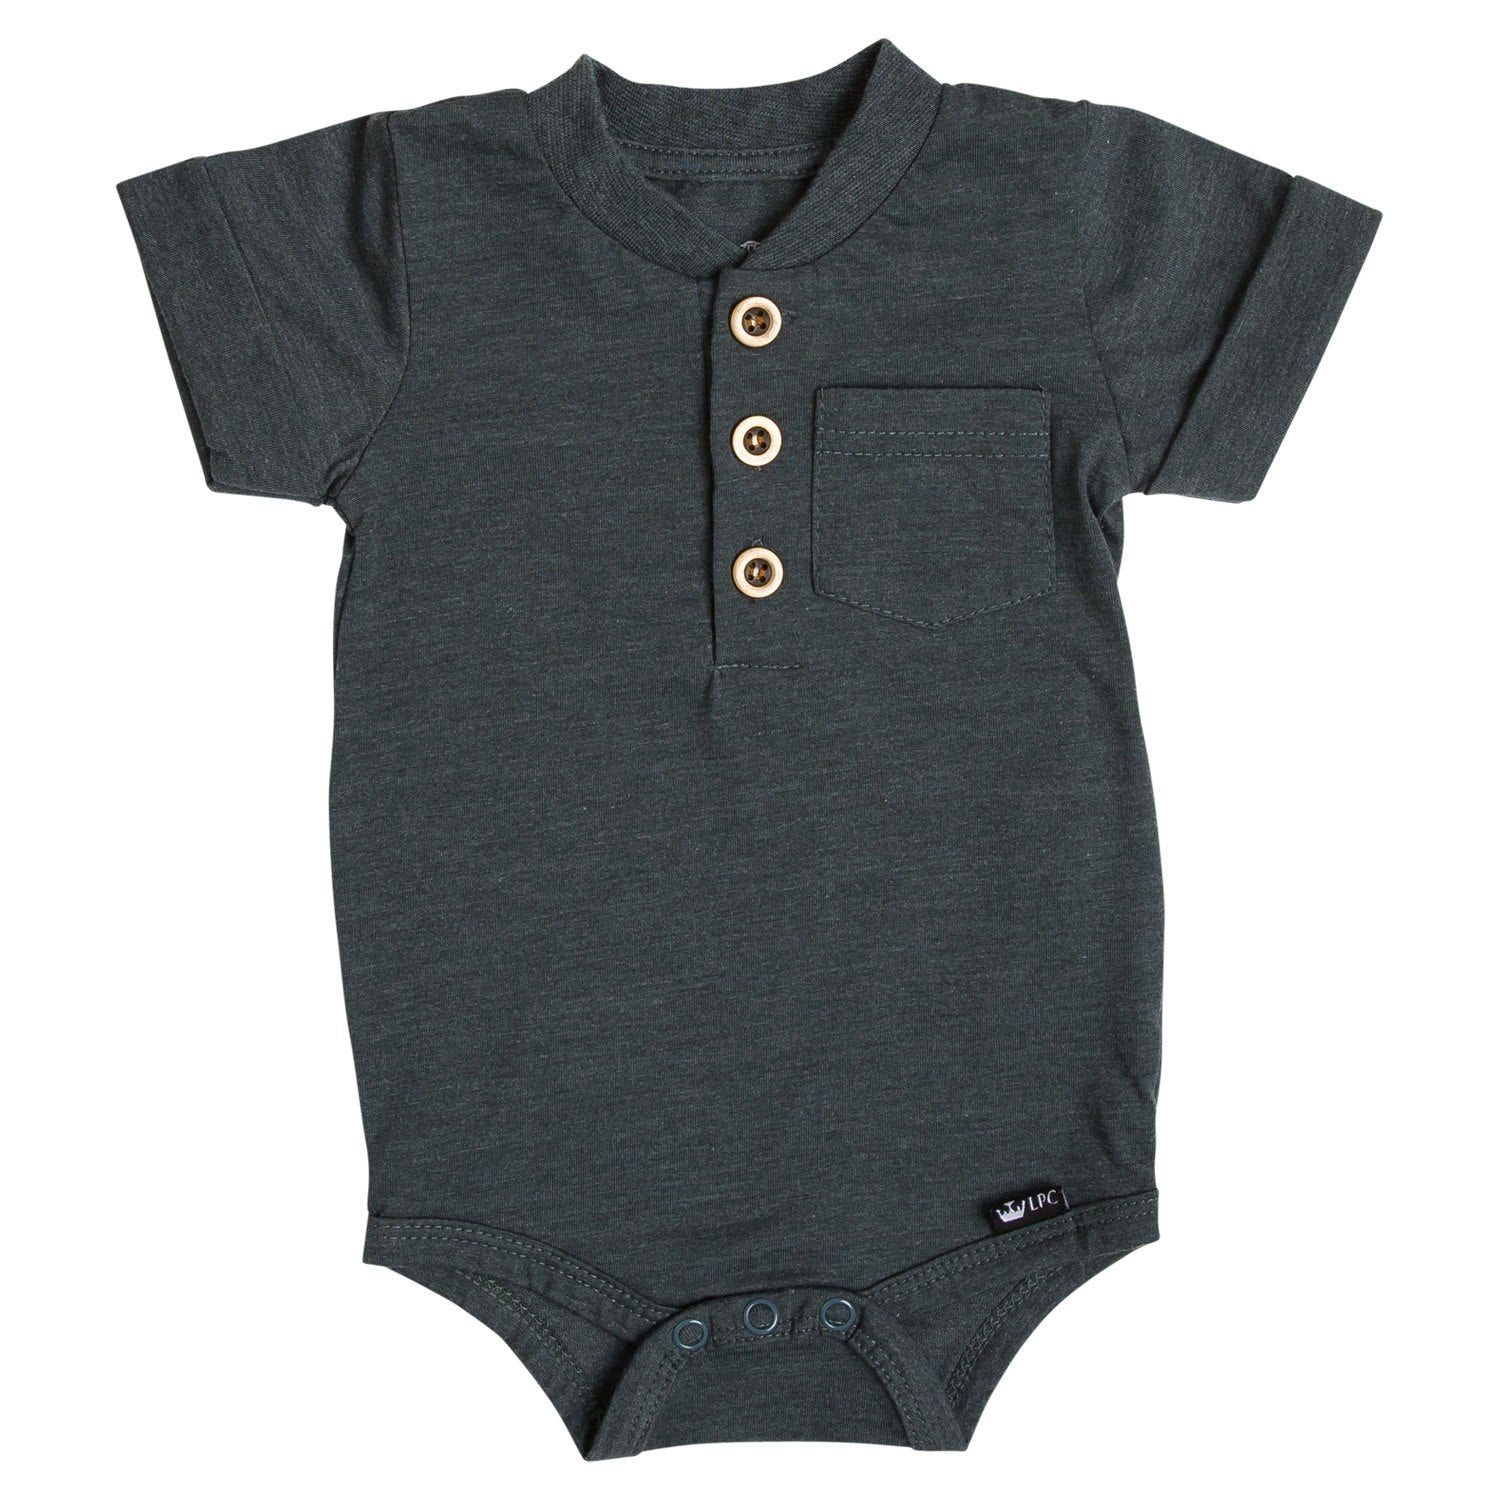 heno-chr-charcoal-henley-bodysuit-front-product.jpg